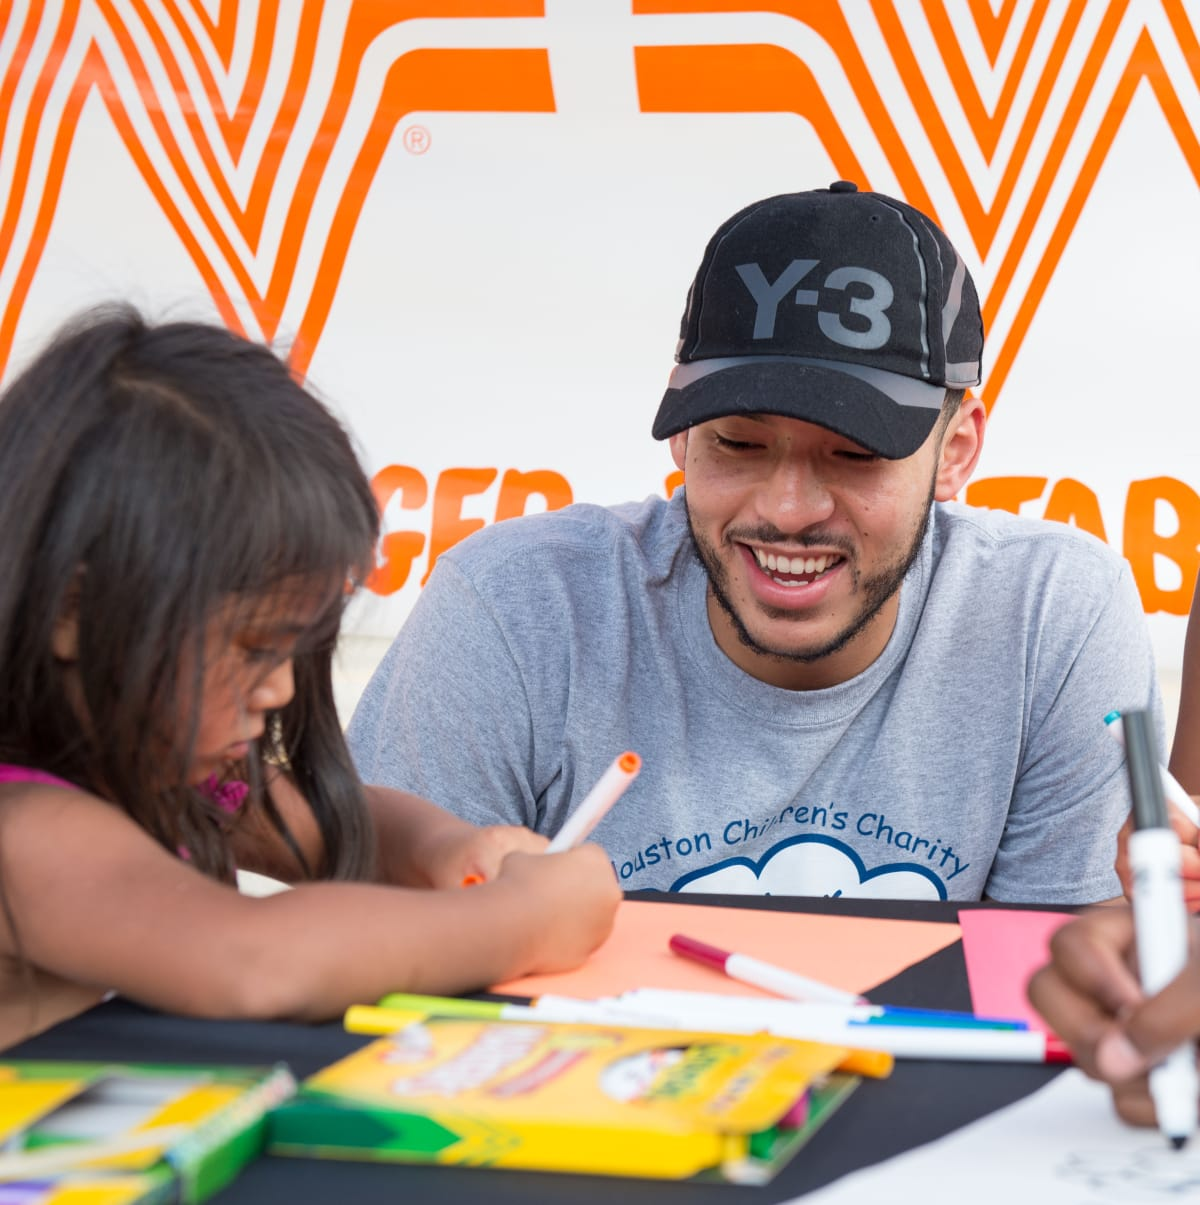 Houston, Carlos Correa, Mattress Firm, Houston Children's Charity mattress giveaway, August 2017, Carlos Correa and kids